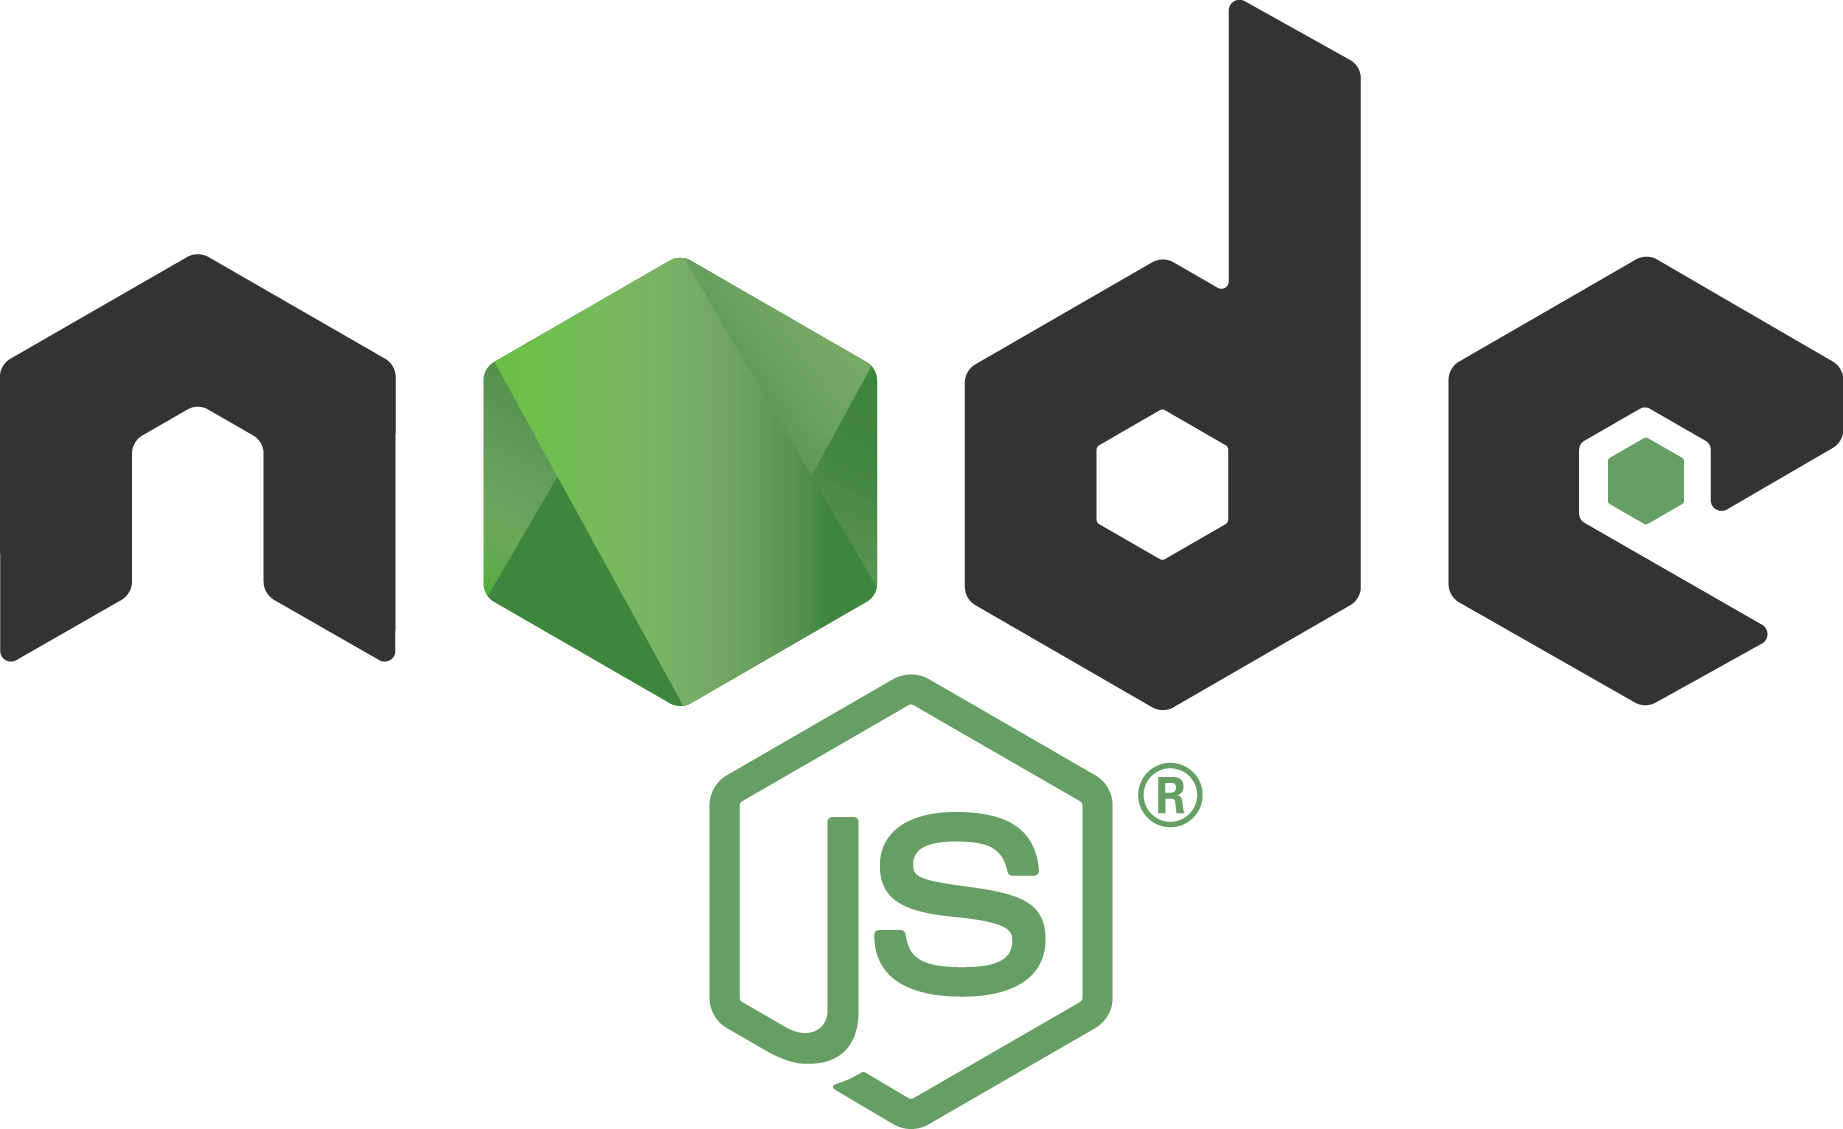 nodejs-new-pantone-black-1.png